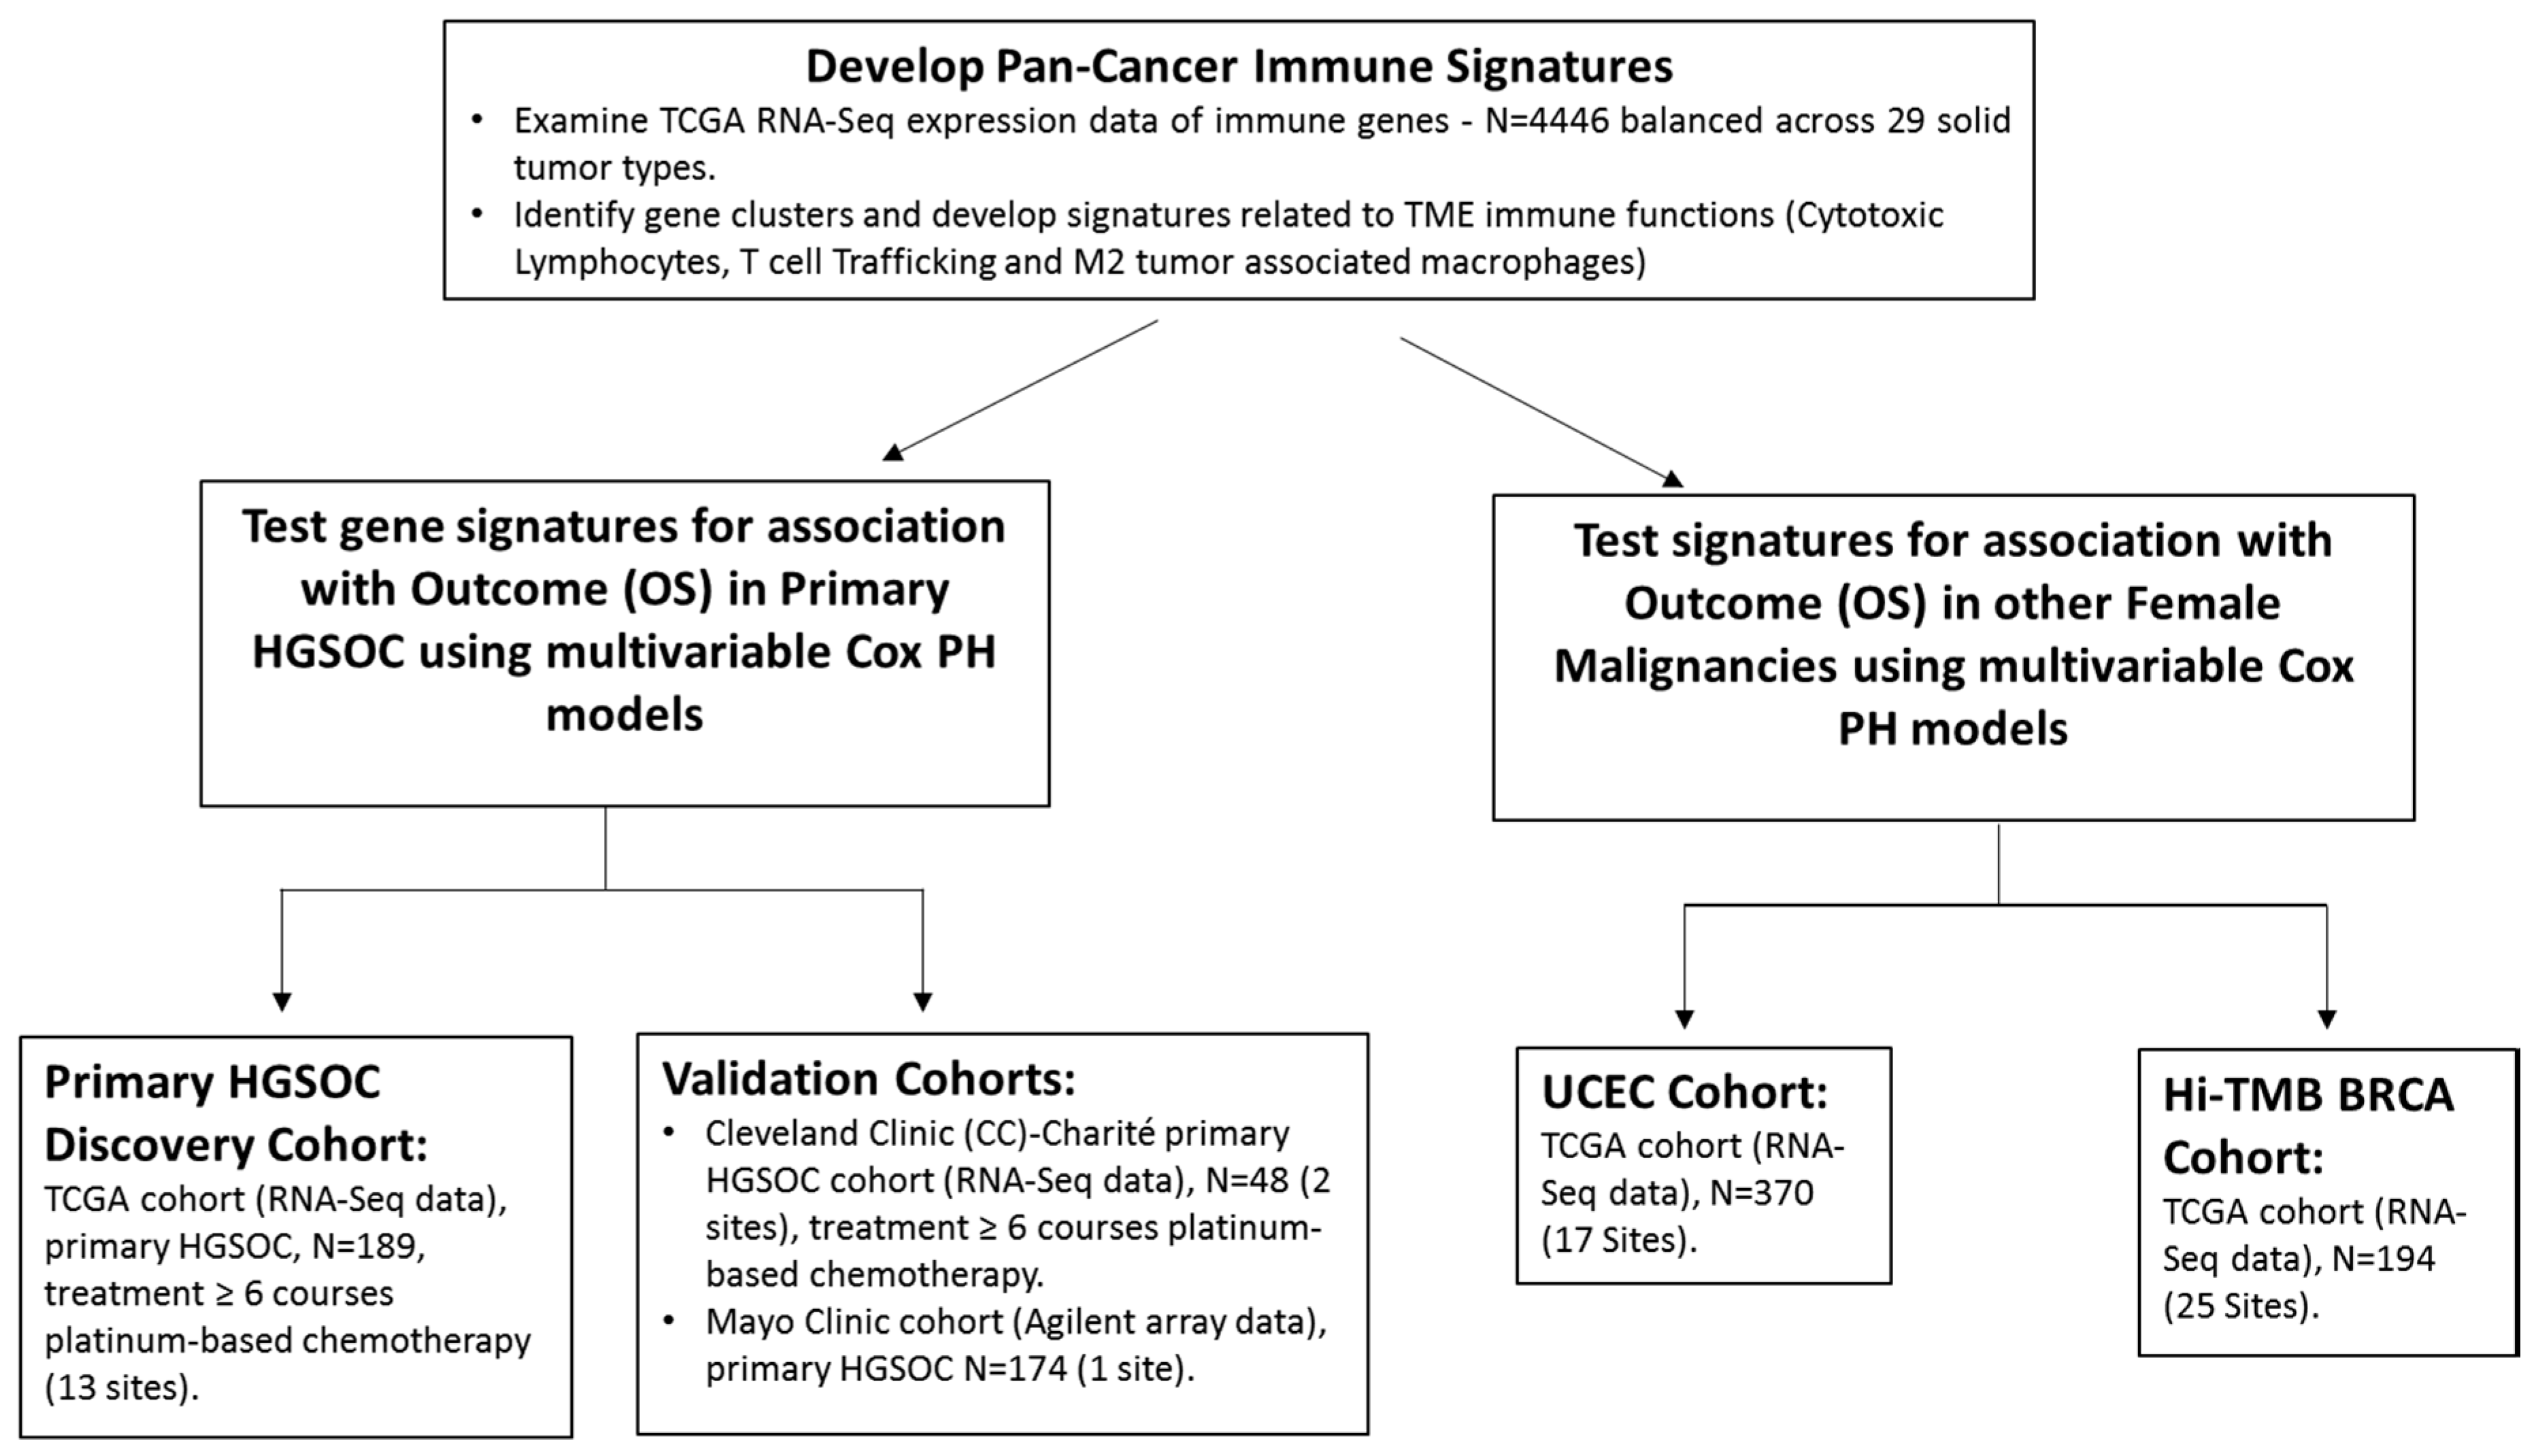 Cancers Free Full Text Rna Immune Signatures From Pan Cancer Analysis Are Prognostic For High Grade Serous Ovarian Cancer And Other Female Cancers Html